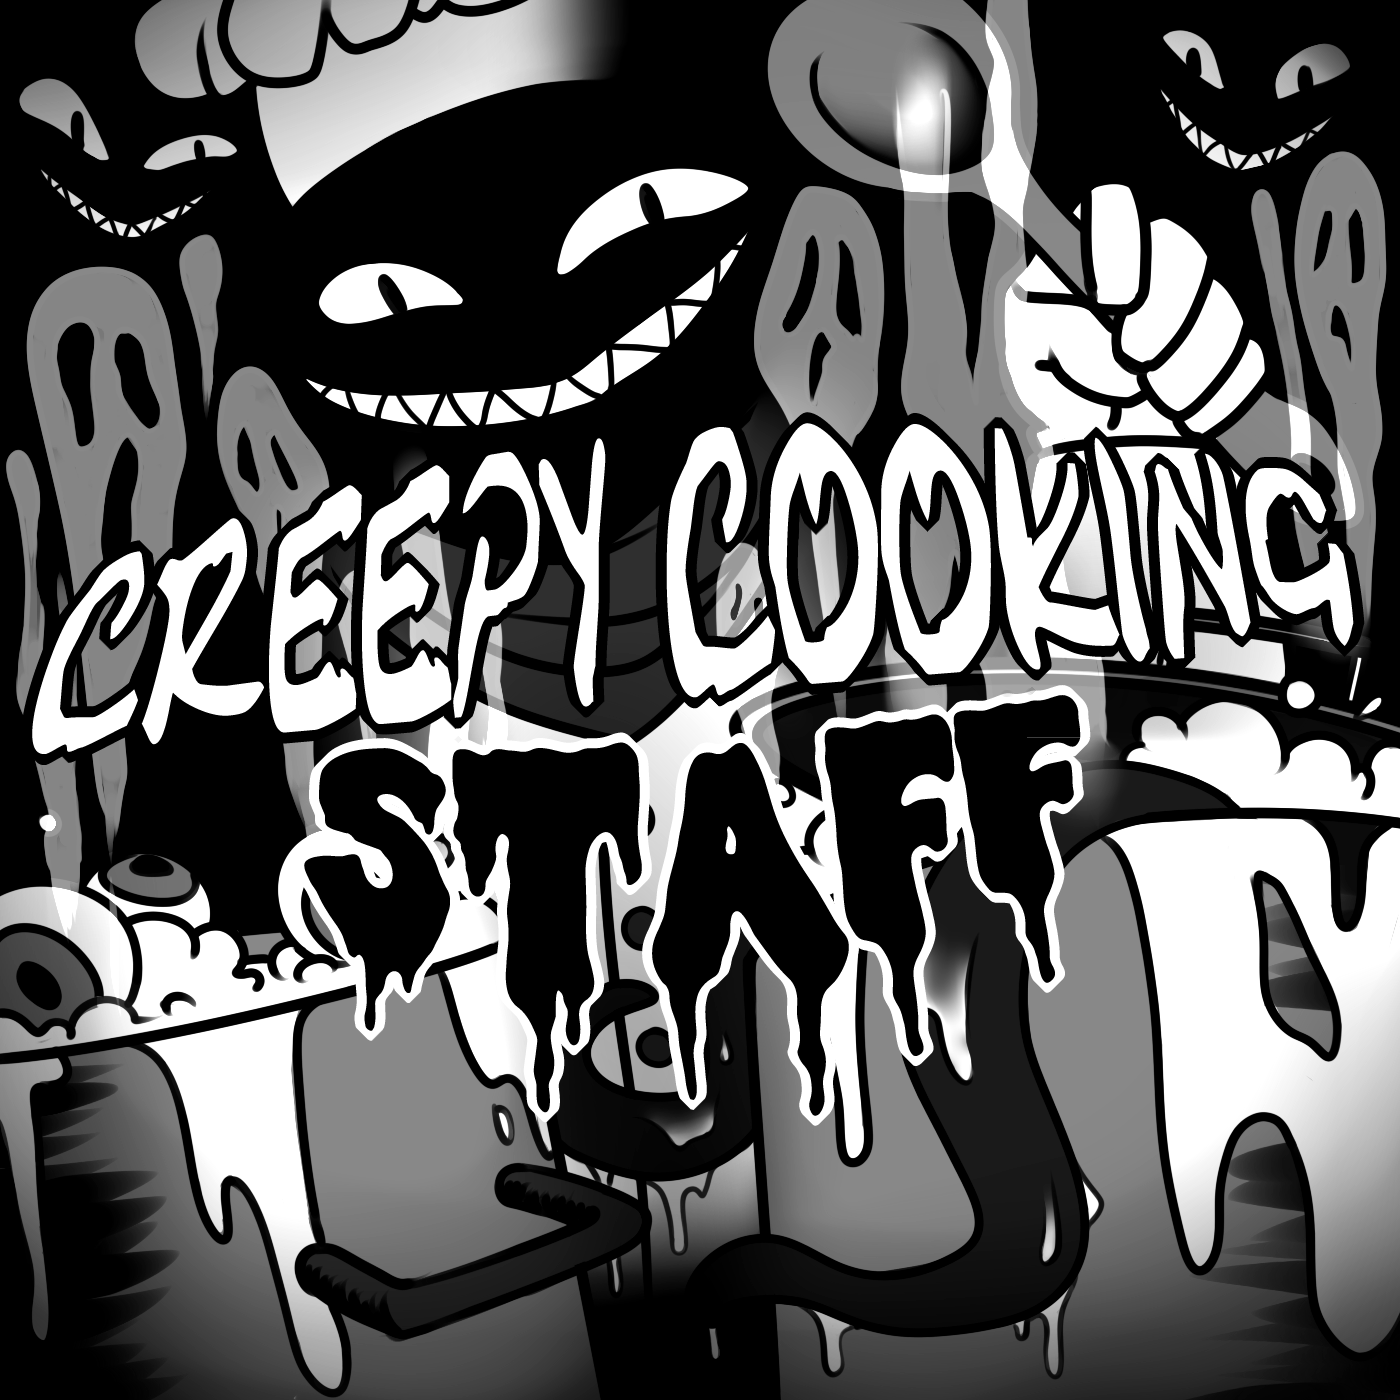 creepy_cooking_staff_ep2_cryptid